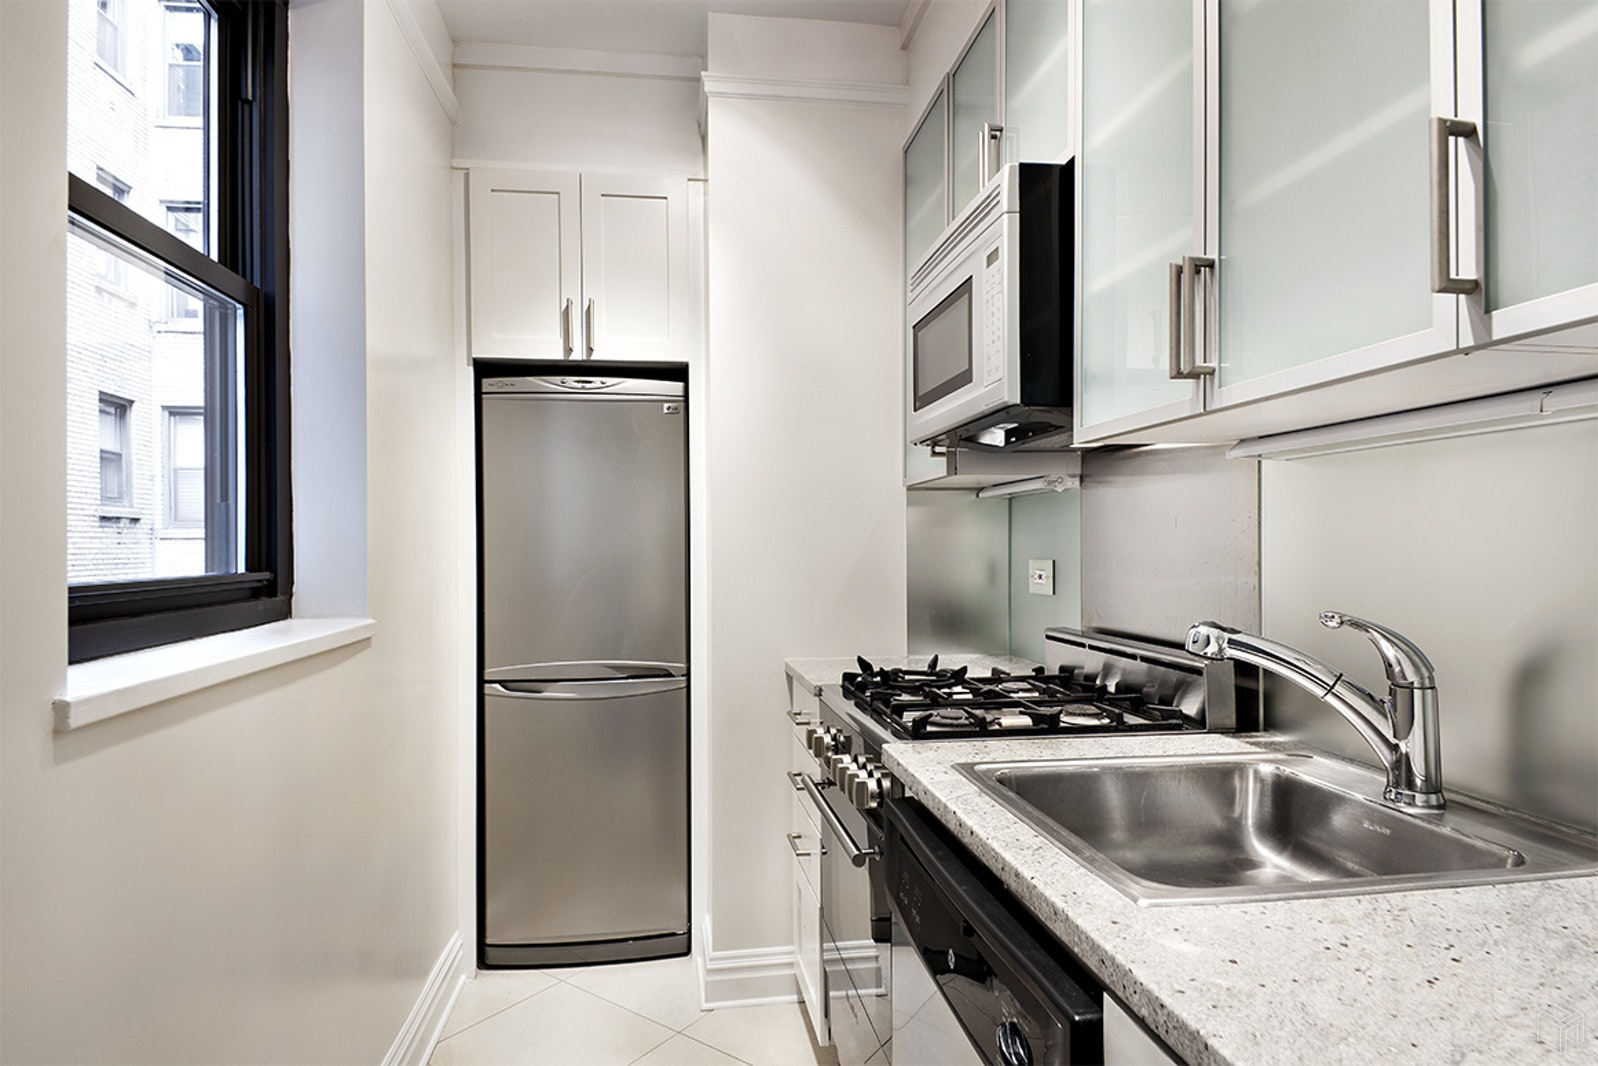 340 East 52nd Street 5f, Midtown East, NYC, 10022, $3,350, Rented Property, Halstead Real Estate, Photo 3